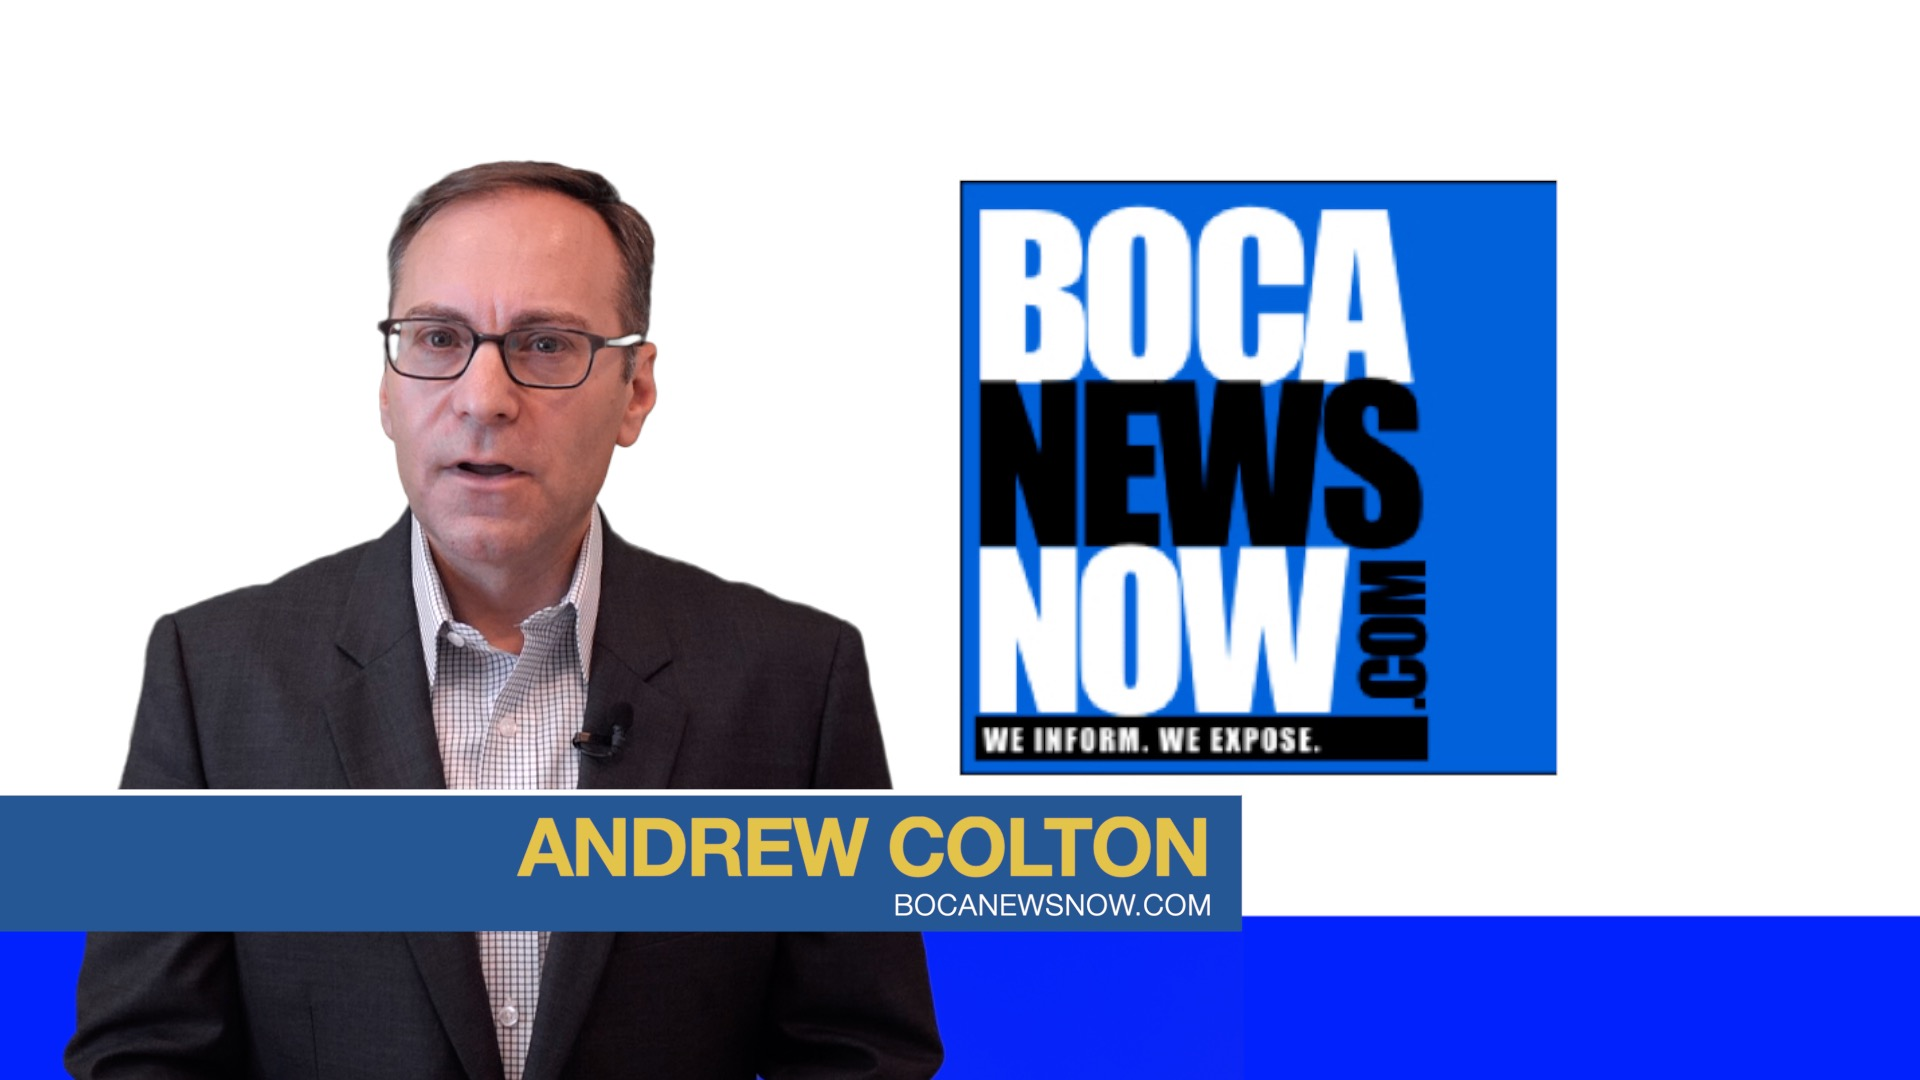 boca news now tv - Andrew Colton